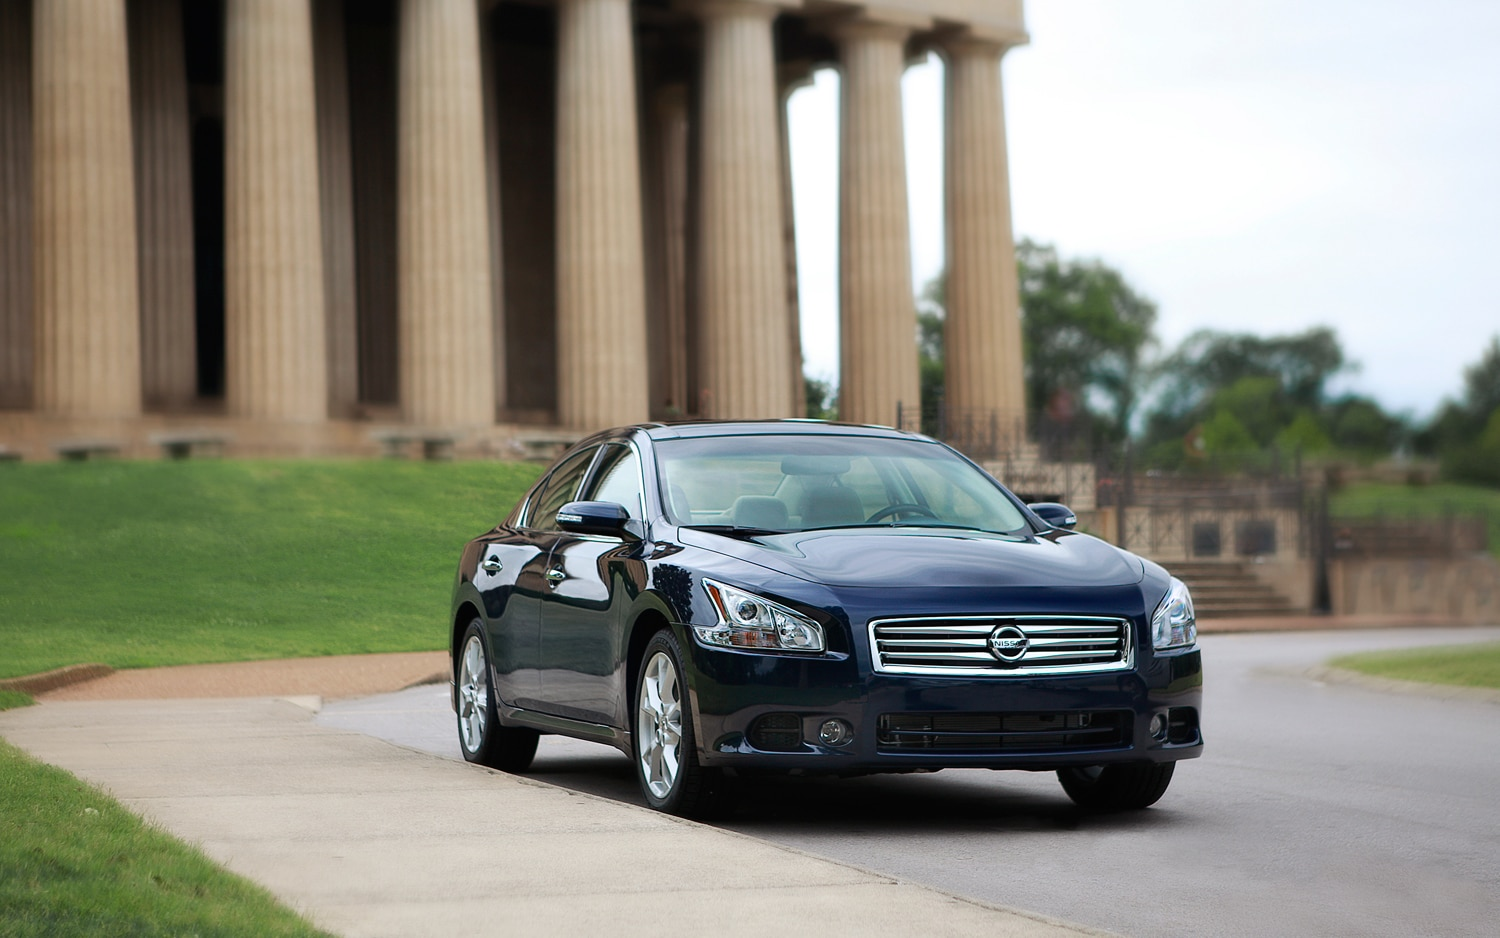 2012 Nissan Maxima Front Right View1